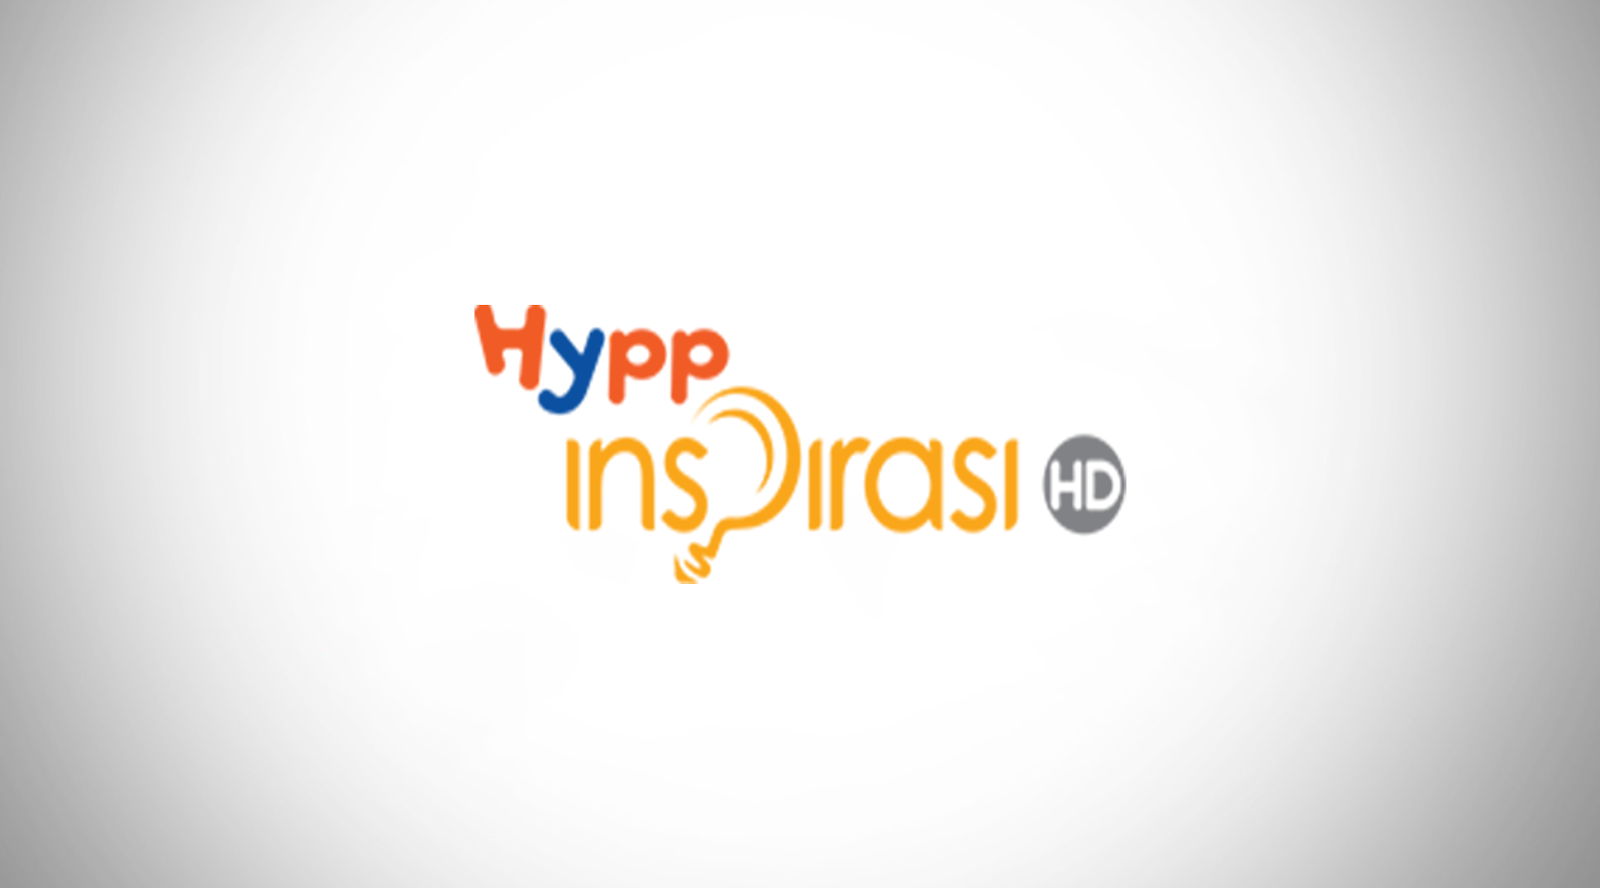 HyppInspirasi HD Live Streaming